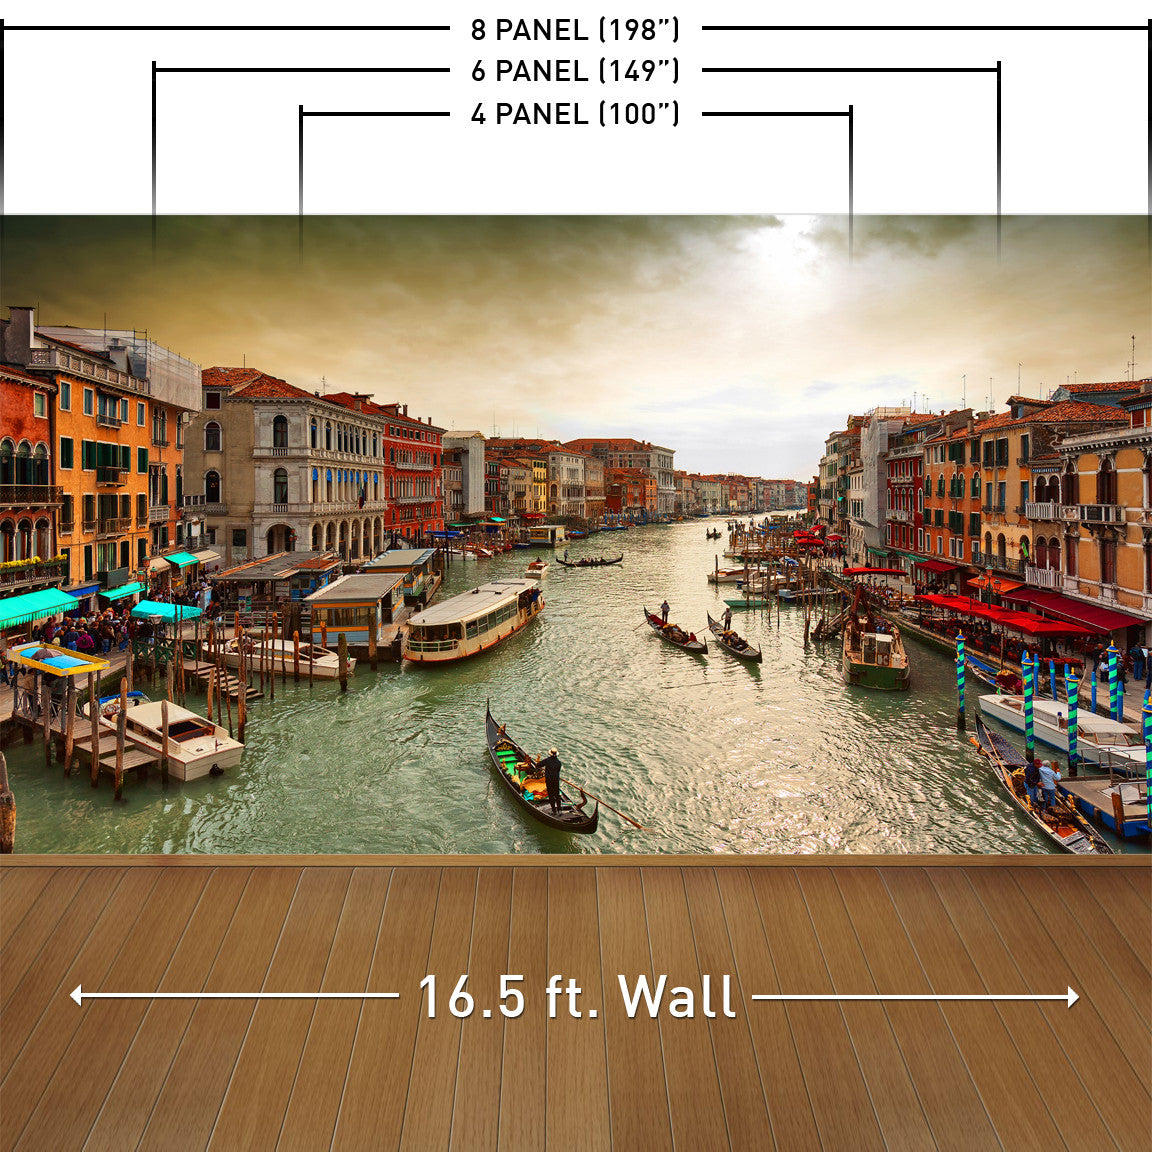 The Canals of Venice Wall Mural